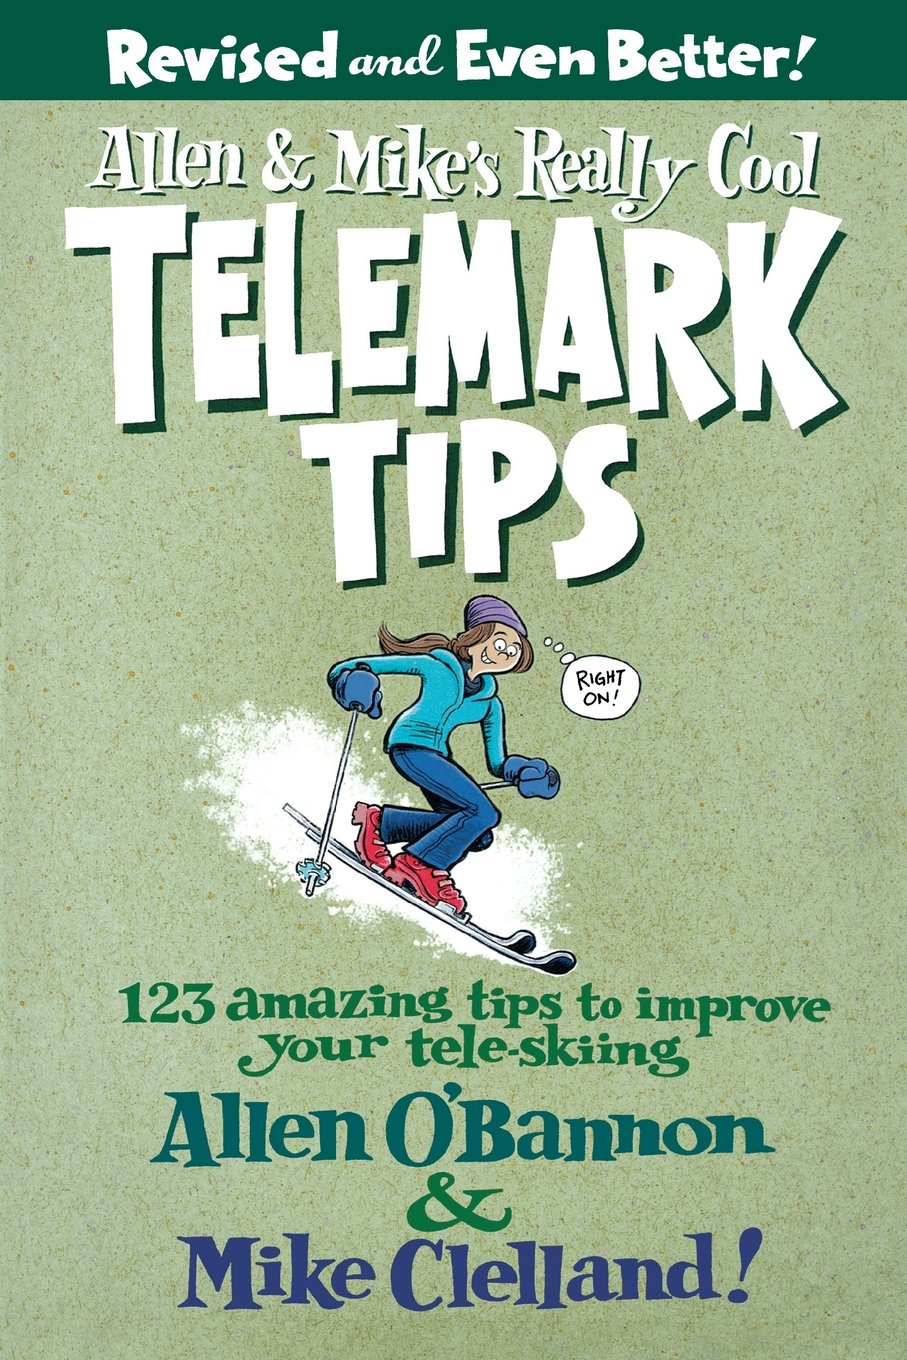 allen-mike-s-really-cool-telemark-tips-revised-and-even-better-123-amazing-tips-to-improve-your-tele-skiing-allen-mike-s-series